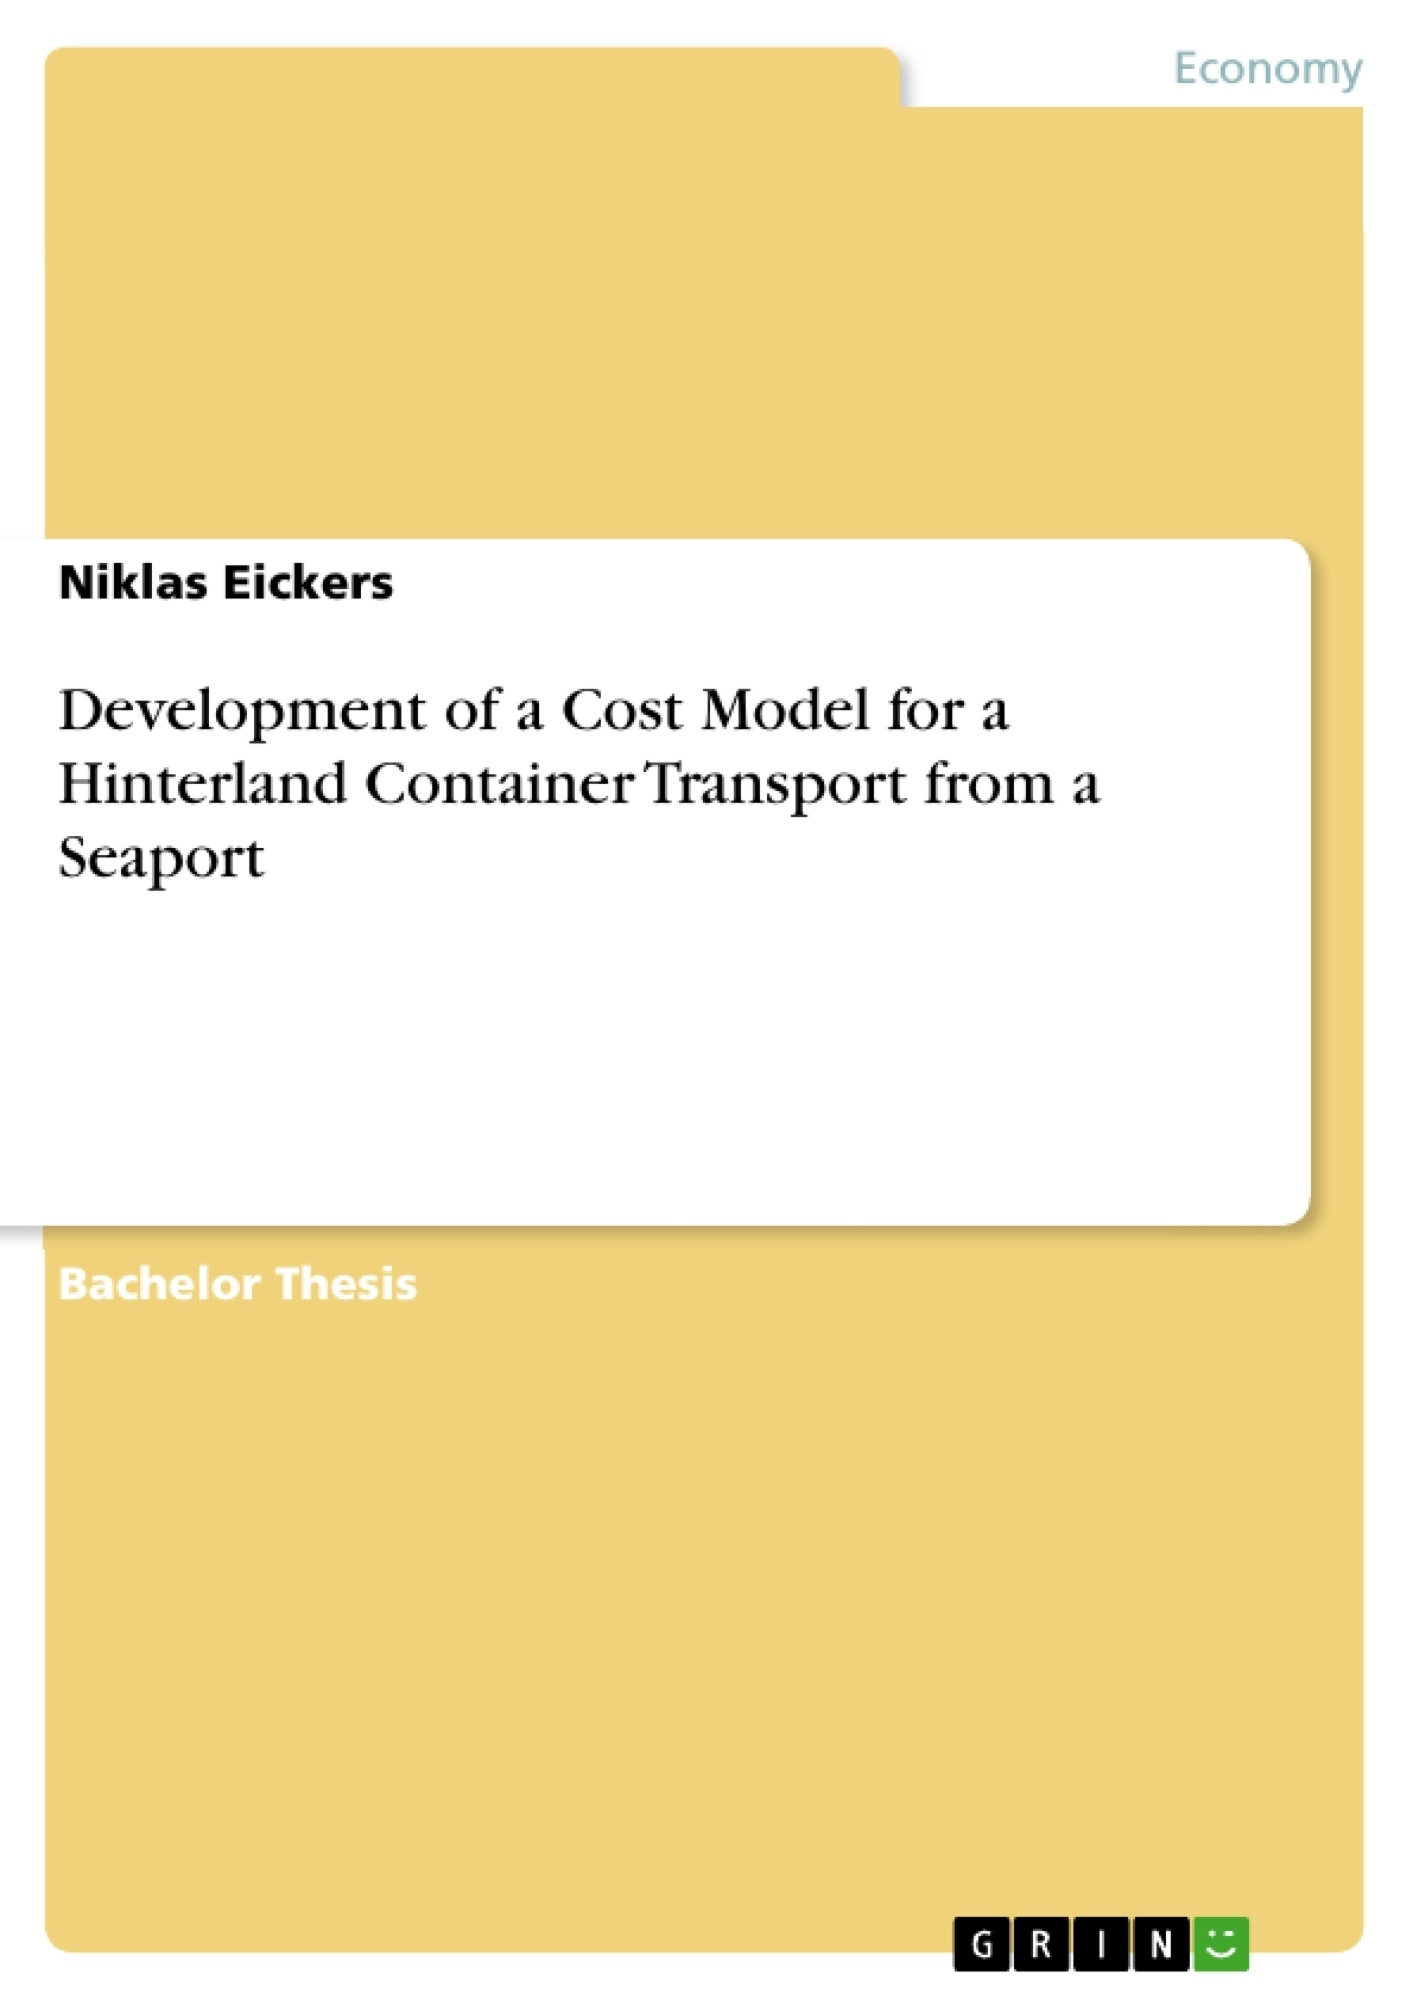 Title: Development of a Cost Model for a Hinterland Container Transport from a Seaport